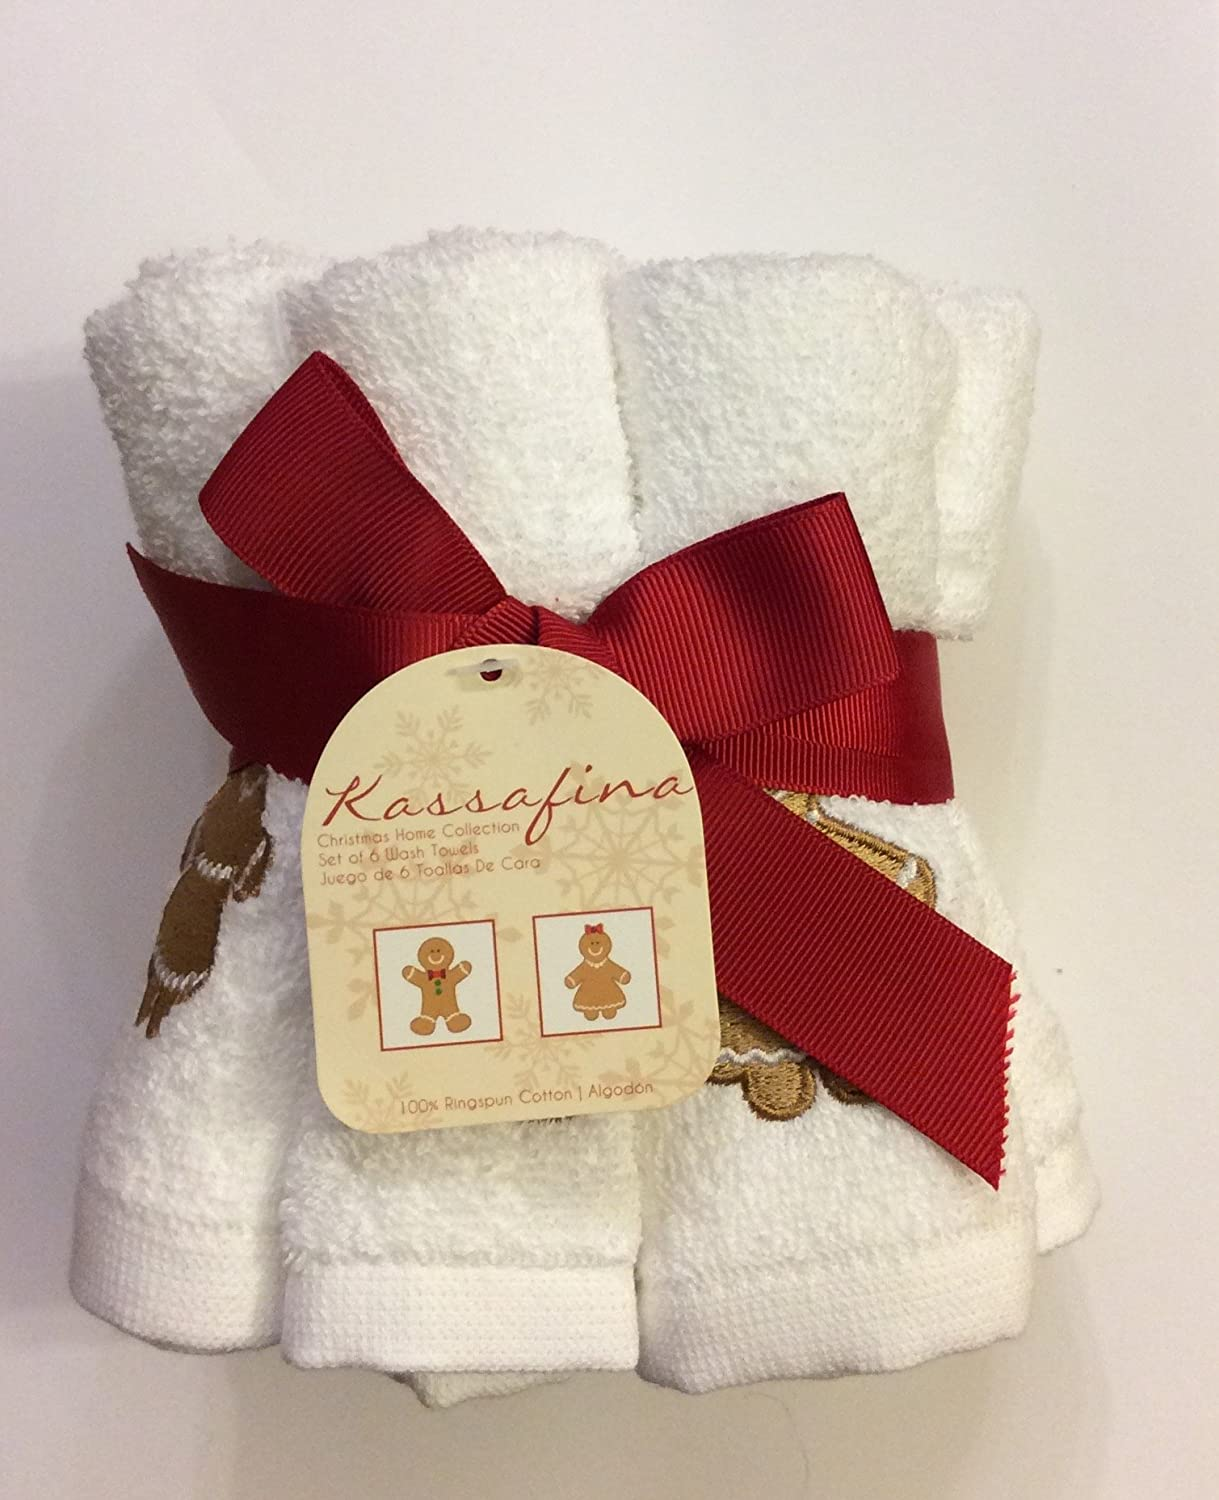 Amazon.com: Set of 6 Kassa Fina Holiday Christmas Collection Gingerbread Embellished Wash Towels, White: Home & Kitchen